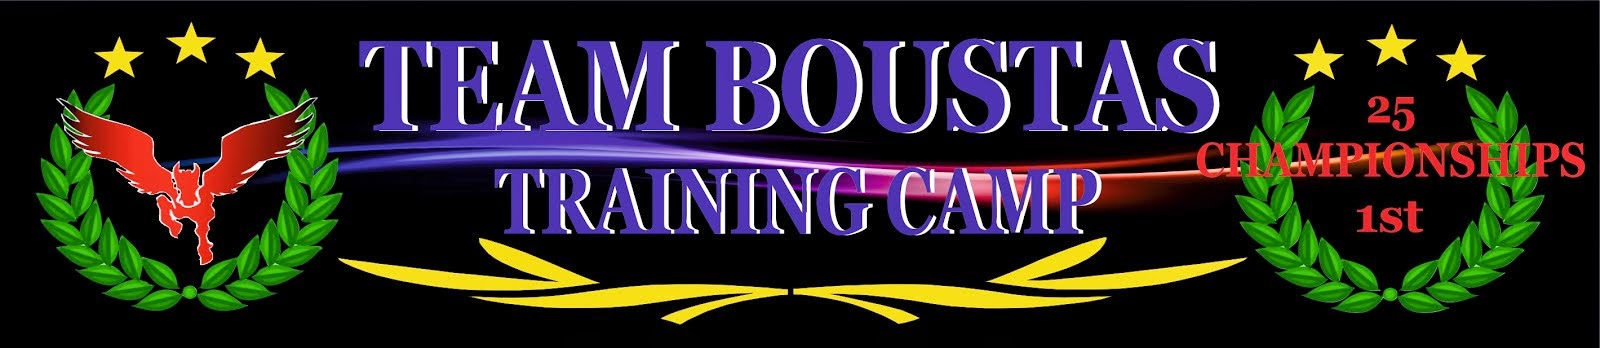 TEAM BOUSTAS TRAINING CAMP